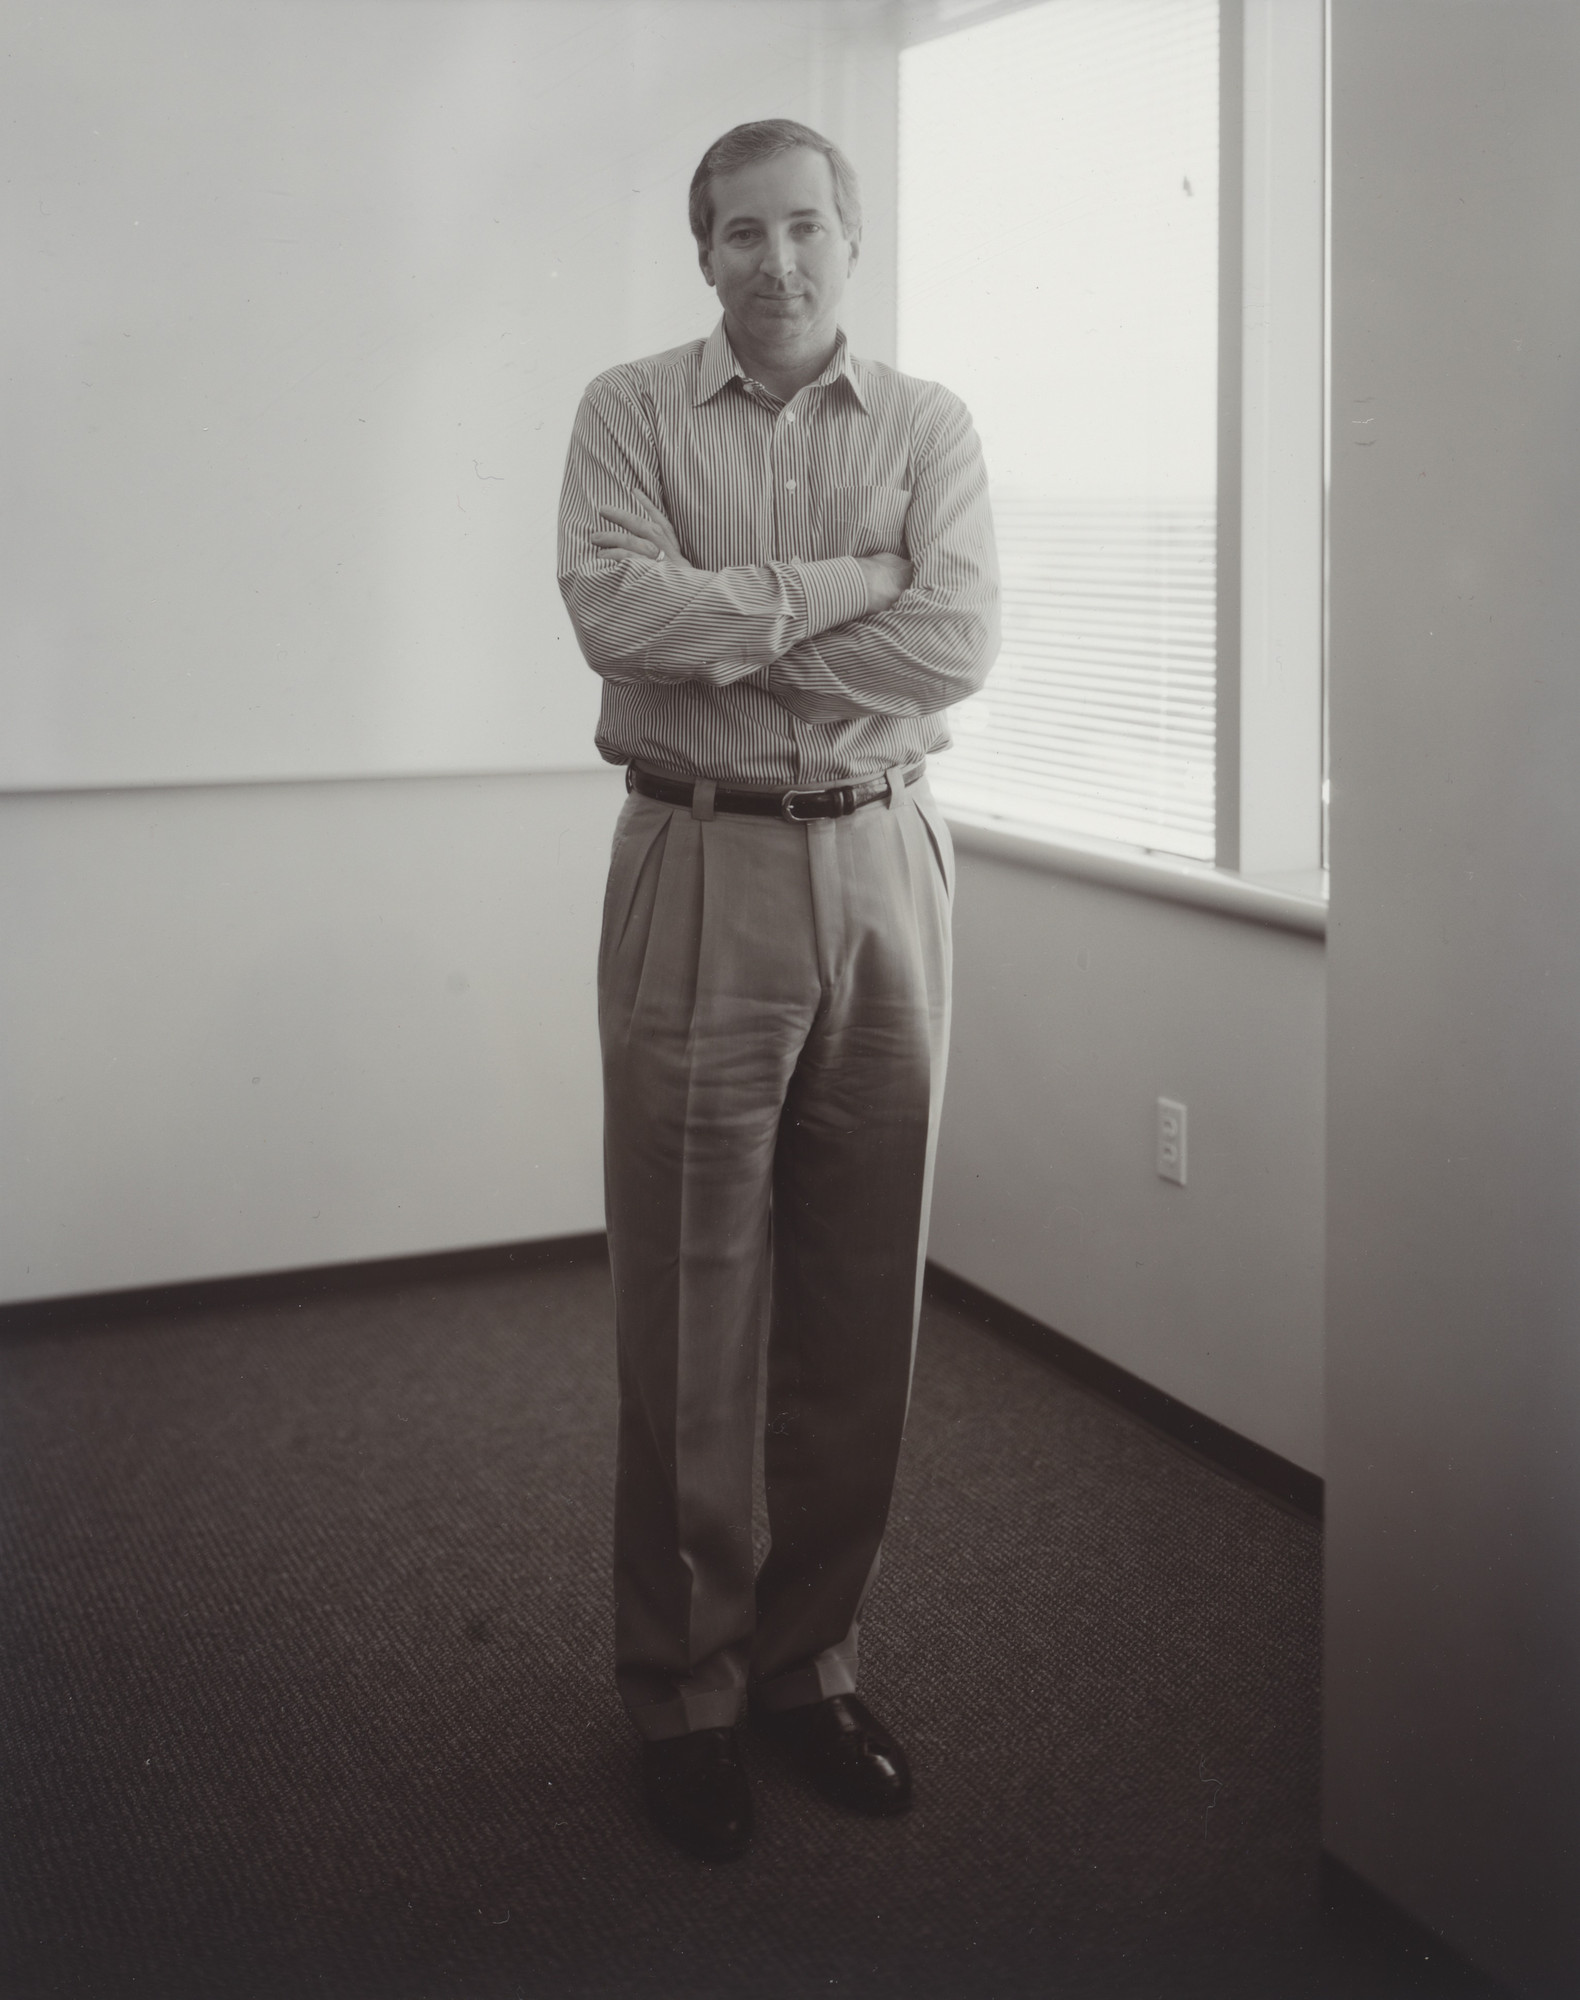 Judith Joy Ross. Scott Kreims, Juniper Systems, Silicon Valley, California. 2000